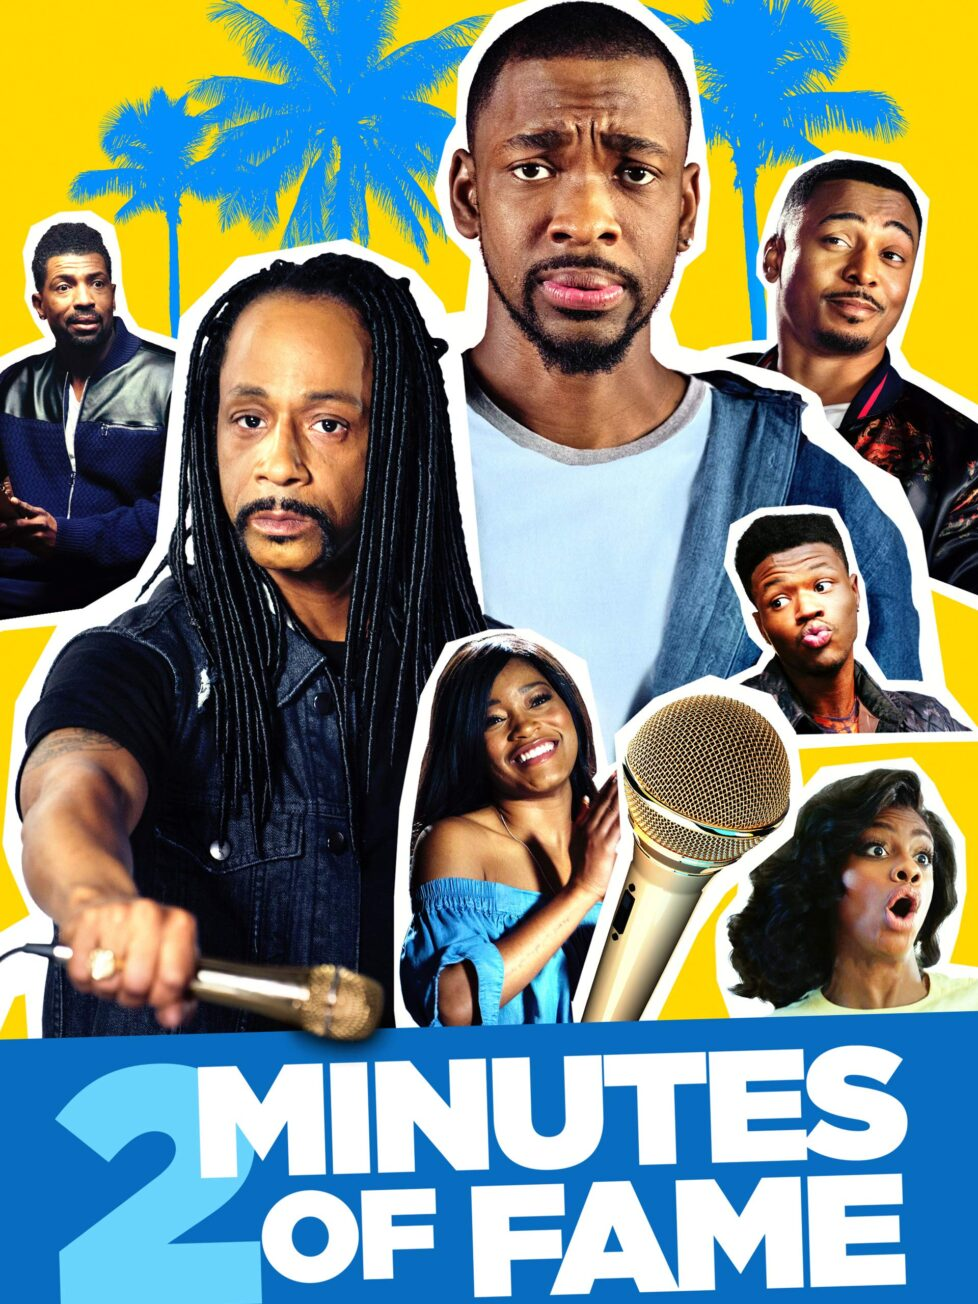 2 minutes of fame movie poster